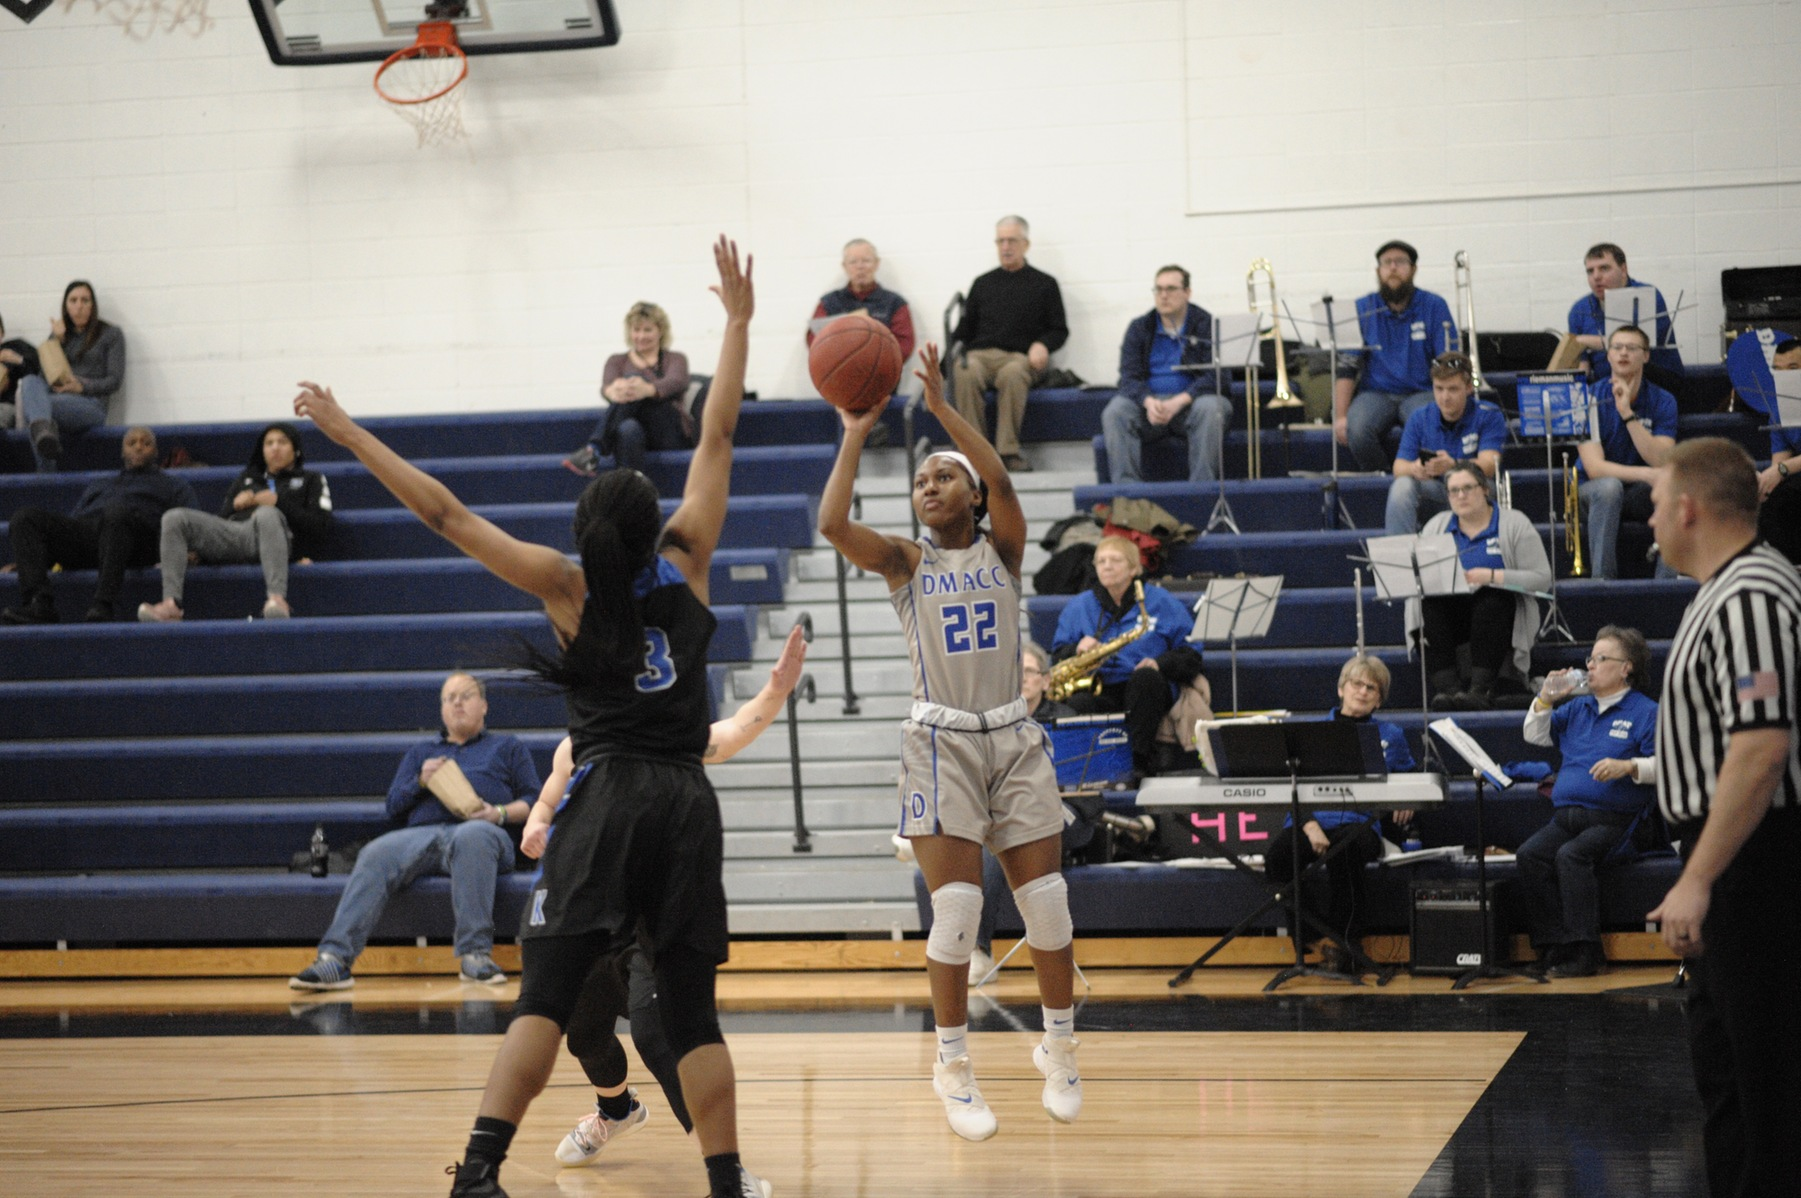 DMACC women's basketball team beats LPT, falls to NIACC